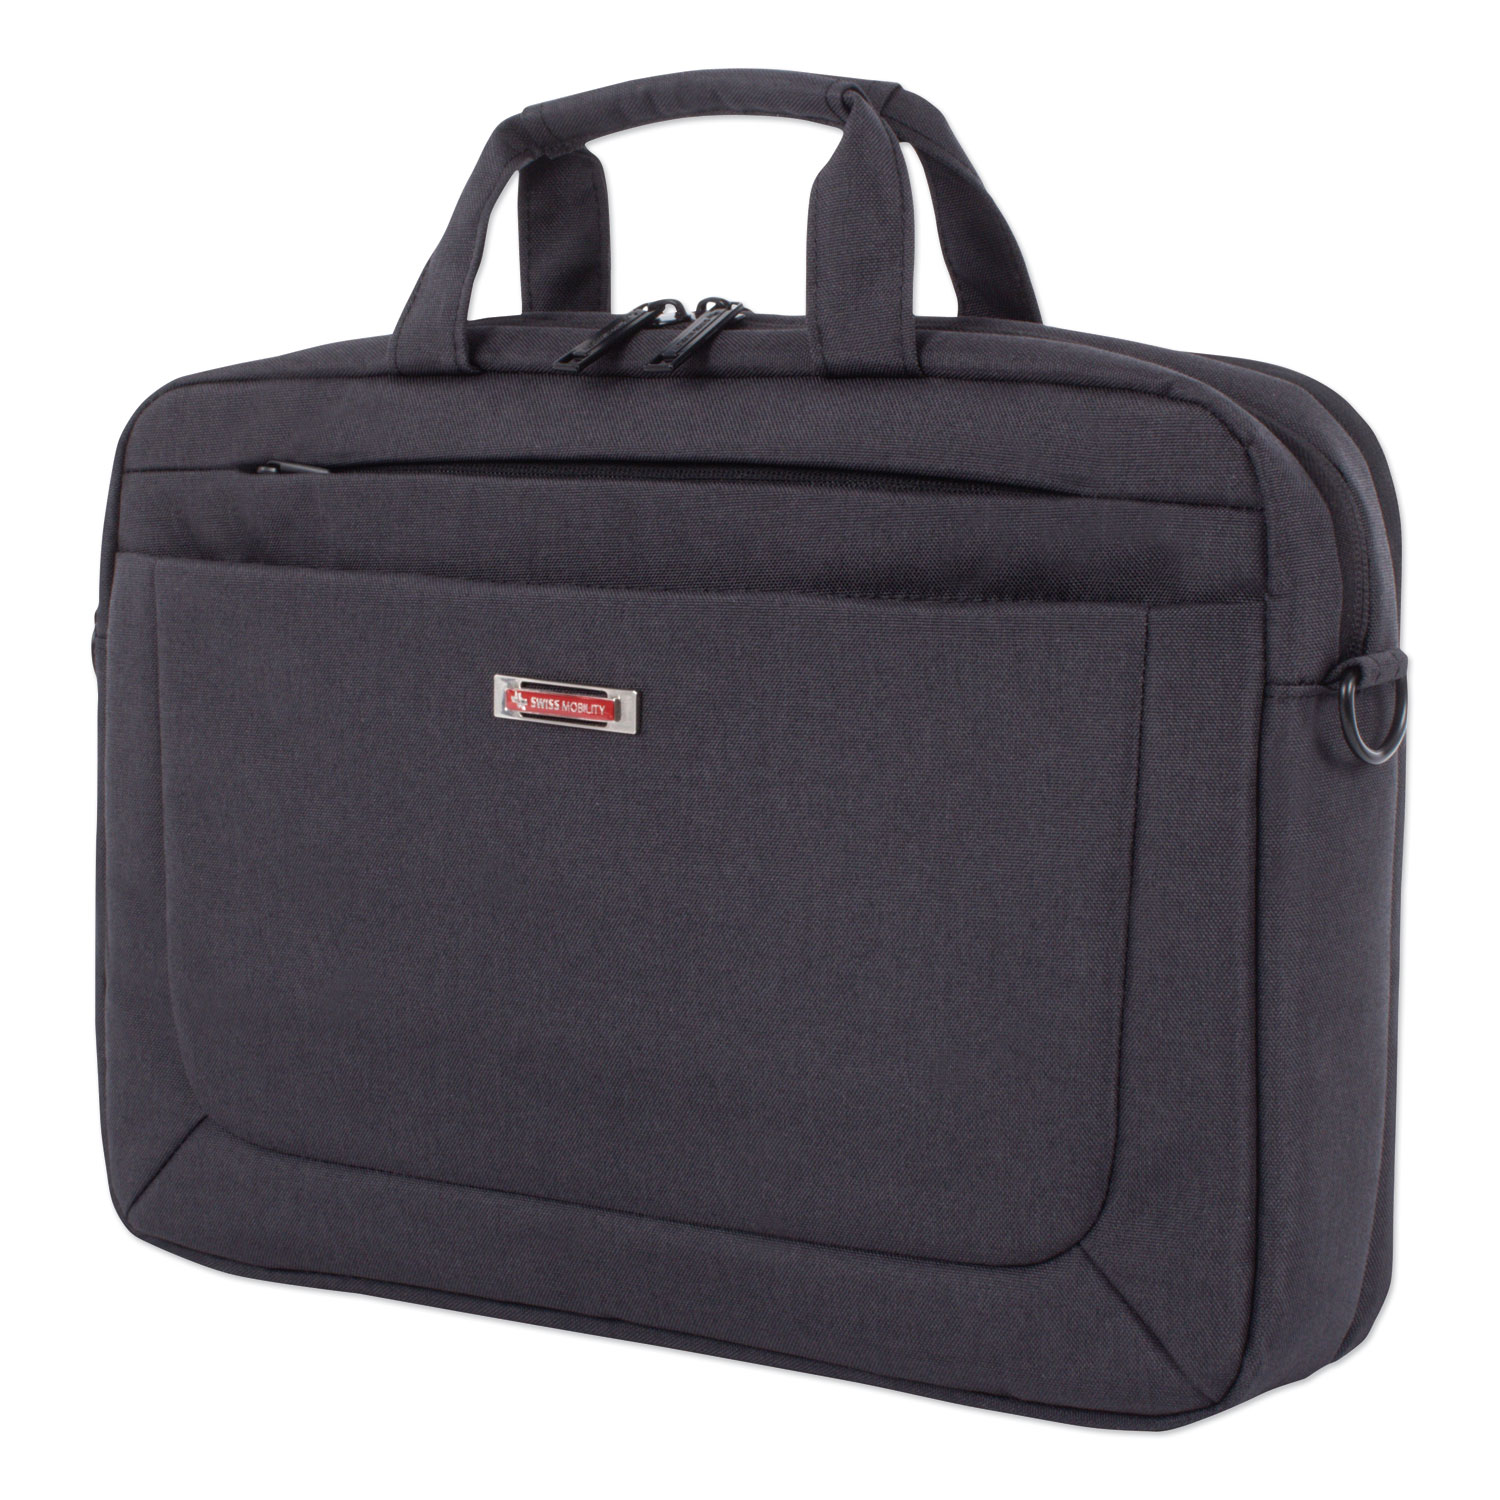 """Cadence 2 Section Briefcase, Holds Laptops 15.6"""", 4.5"""" x 4.5"""" x 16"""", Charcoal"""